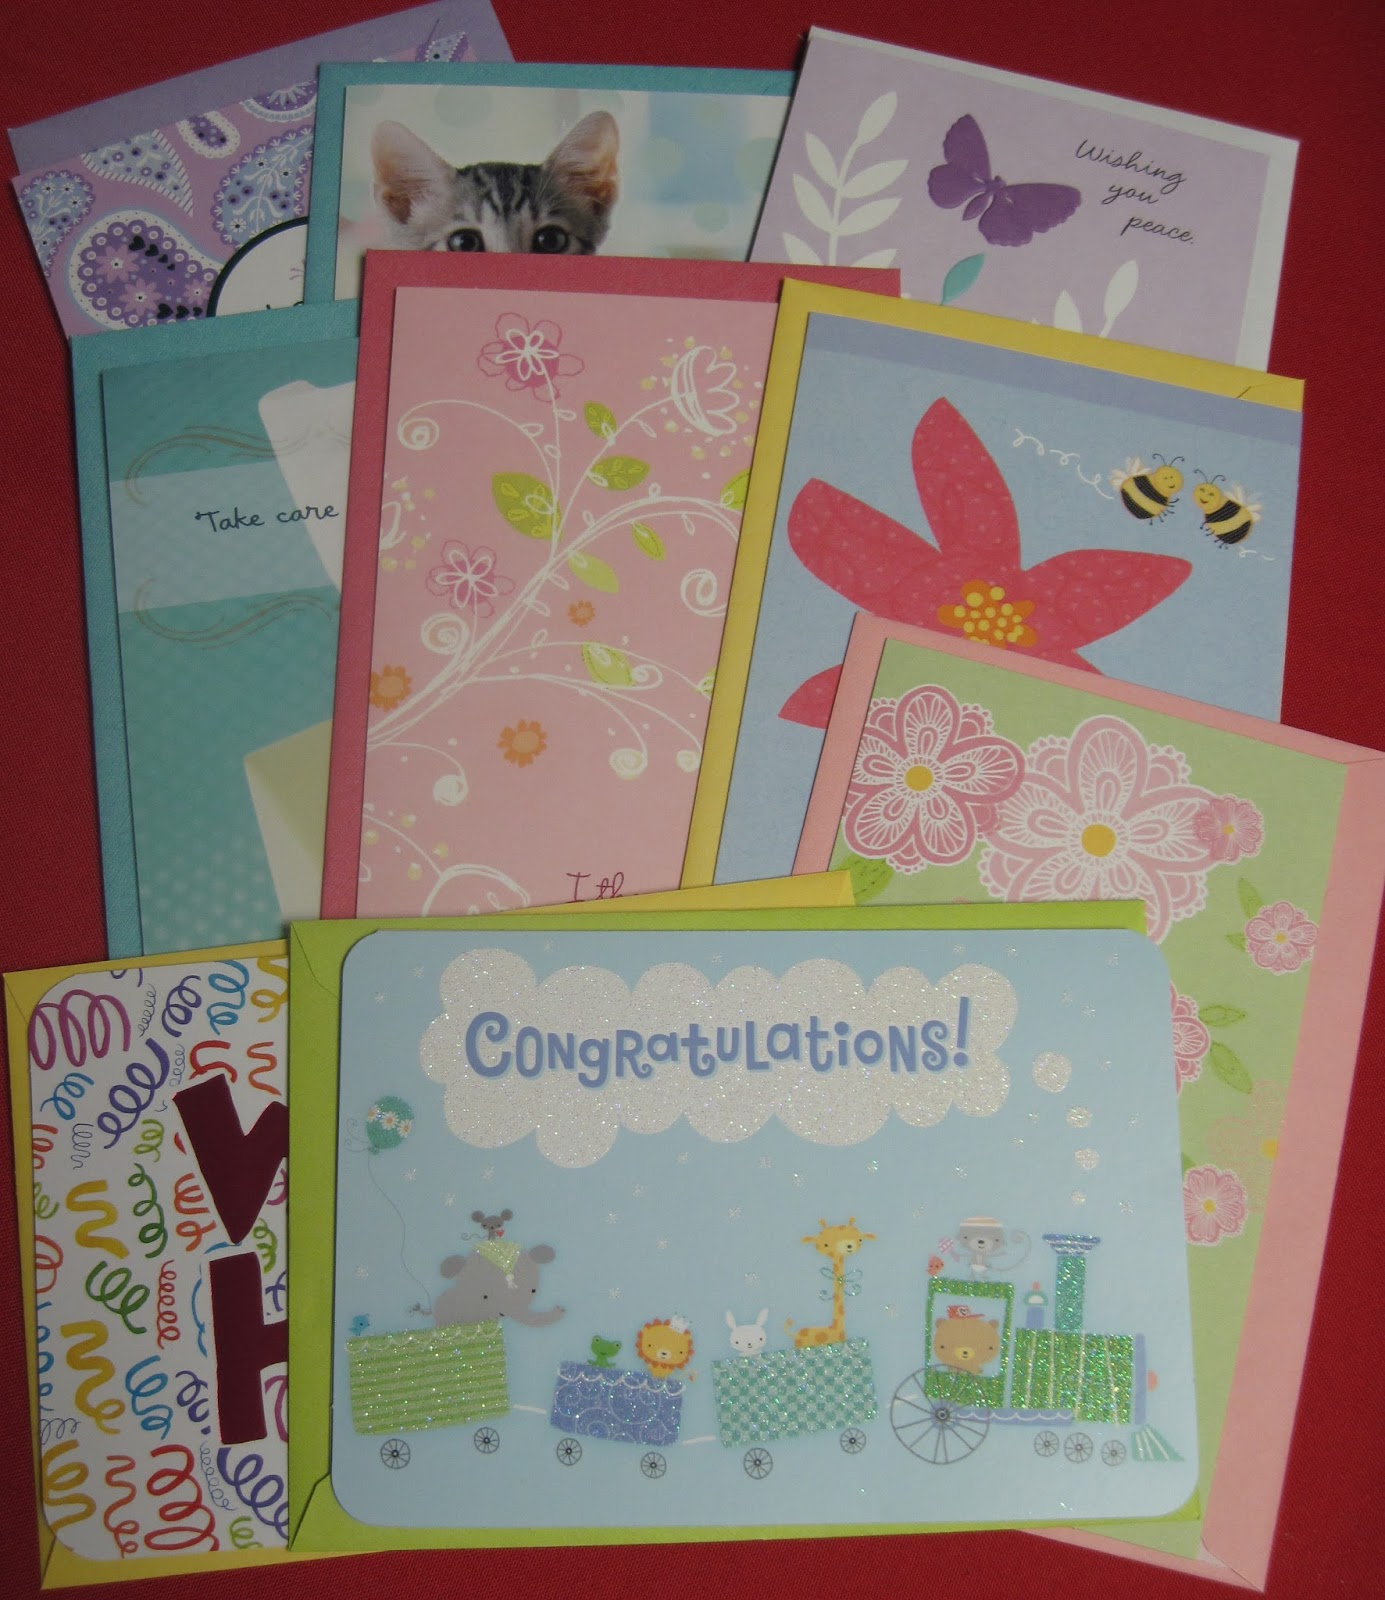 Simply CVS: Free Greeting Cards At CVS